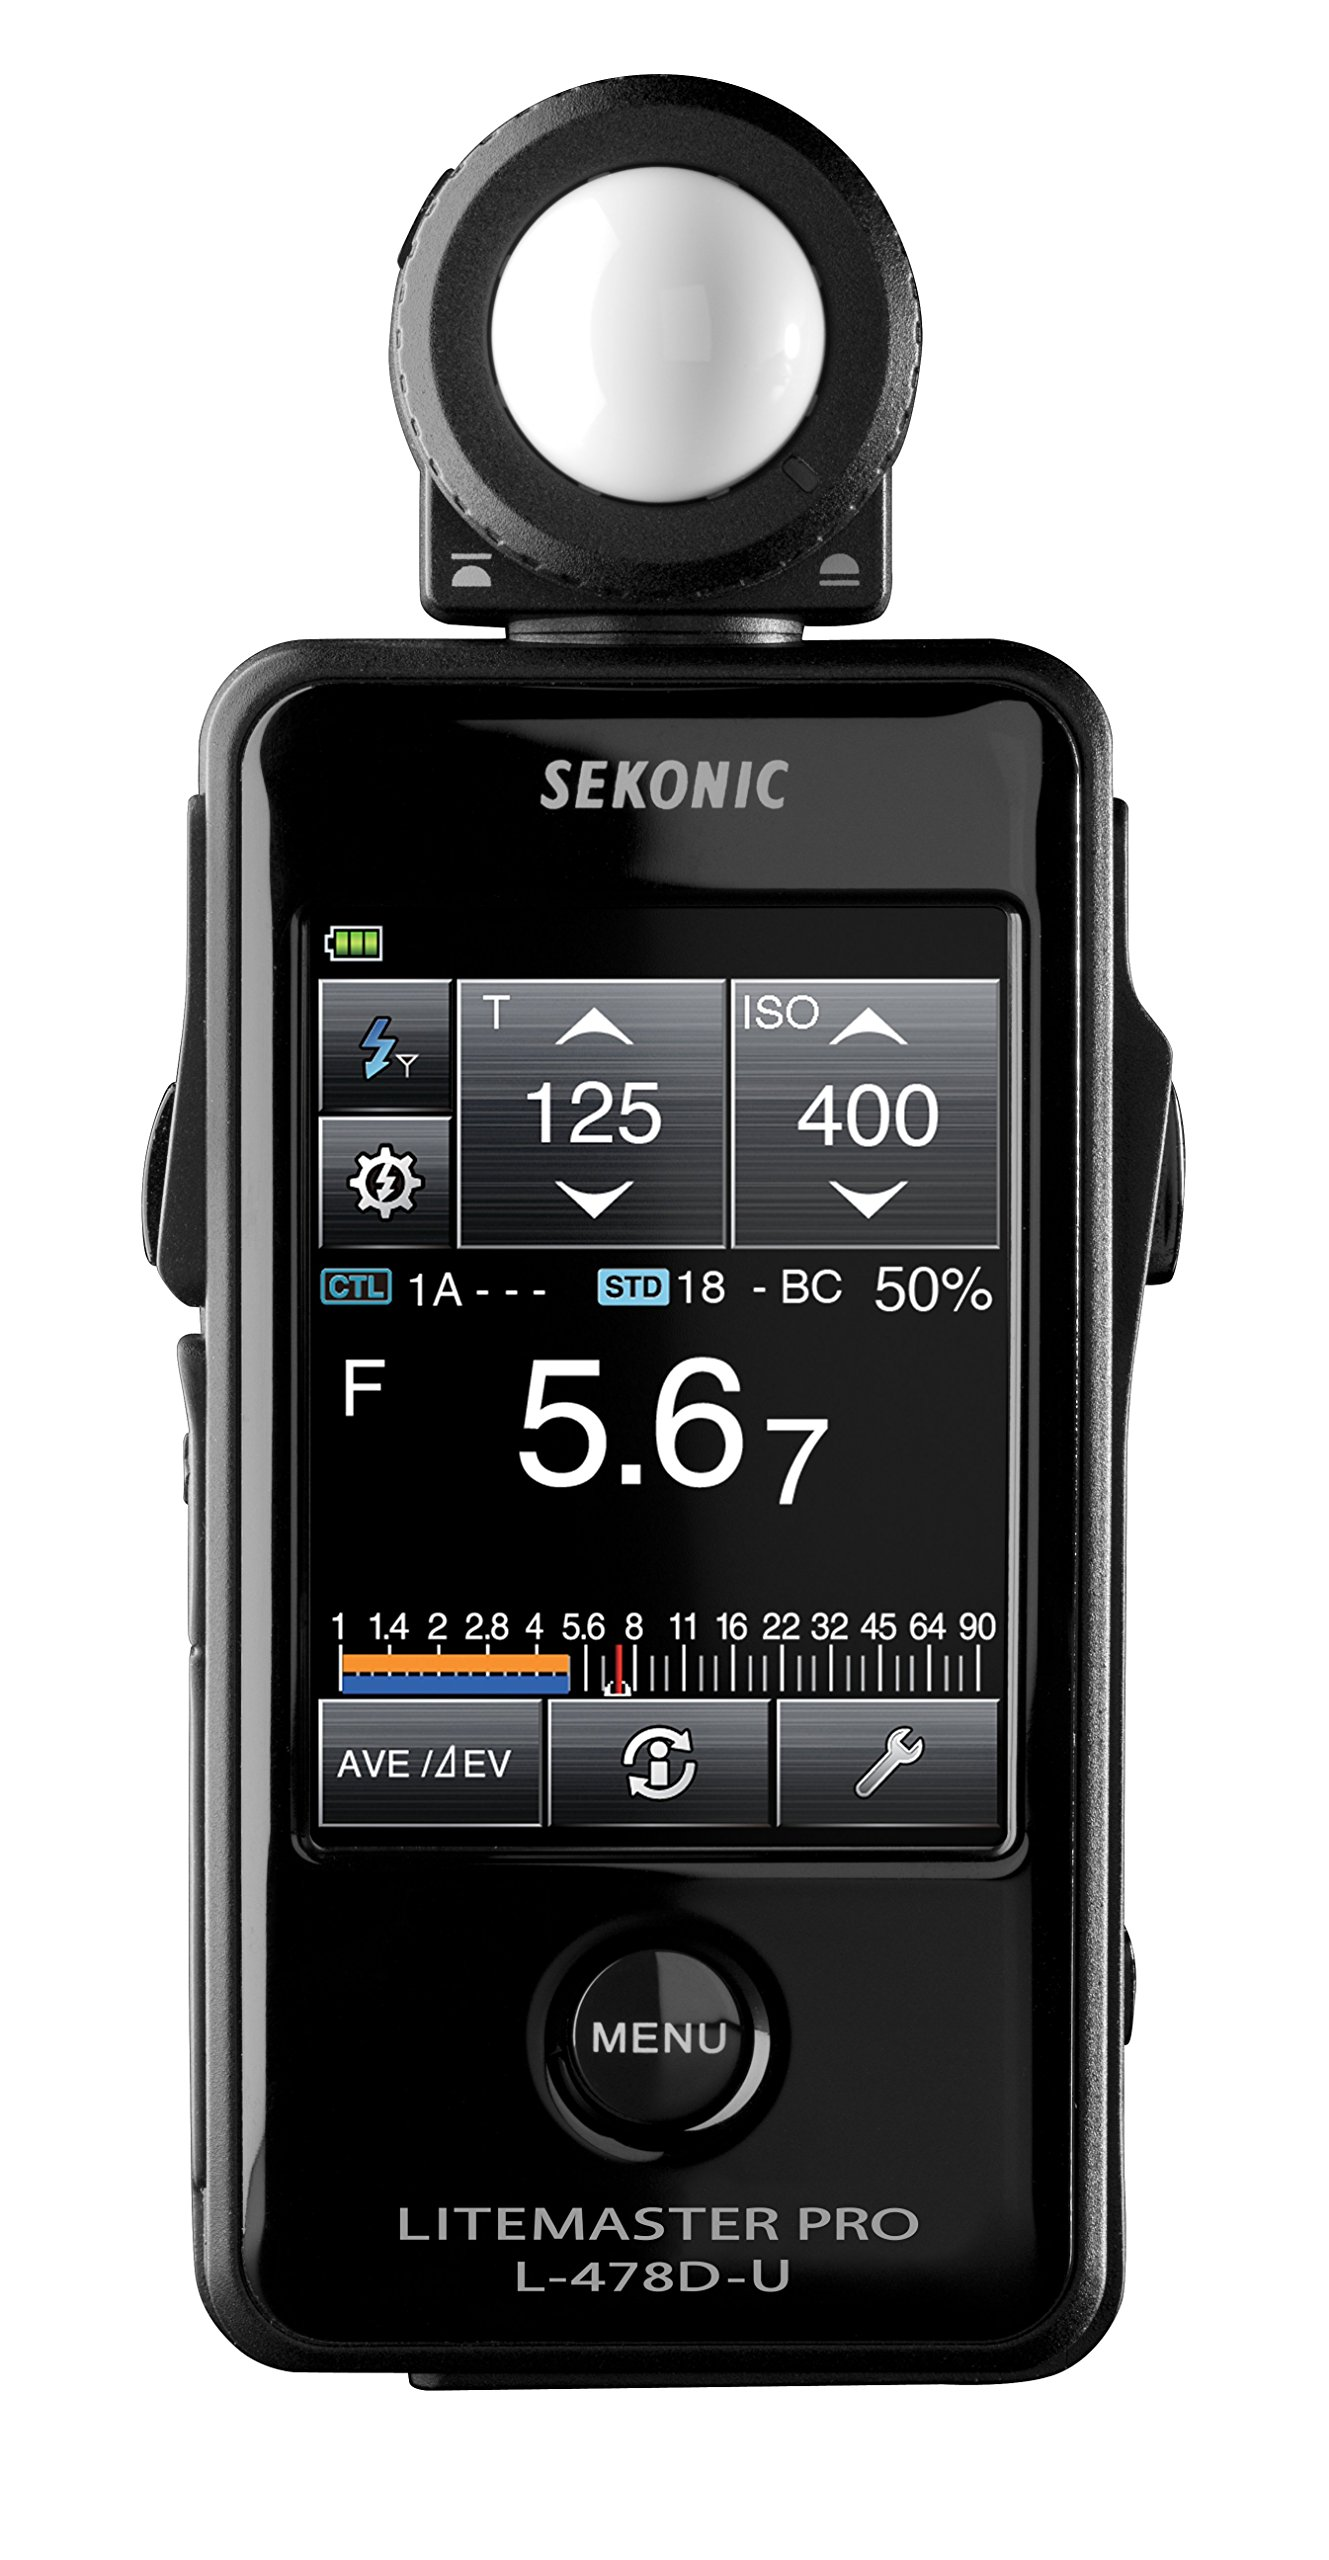 New Sekonic L-478D-U Lightmeter With Exclusive 3-Year Warranty by Sekonic